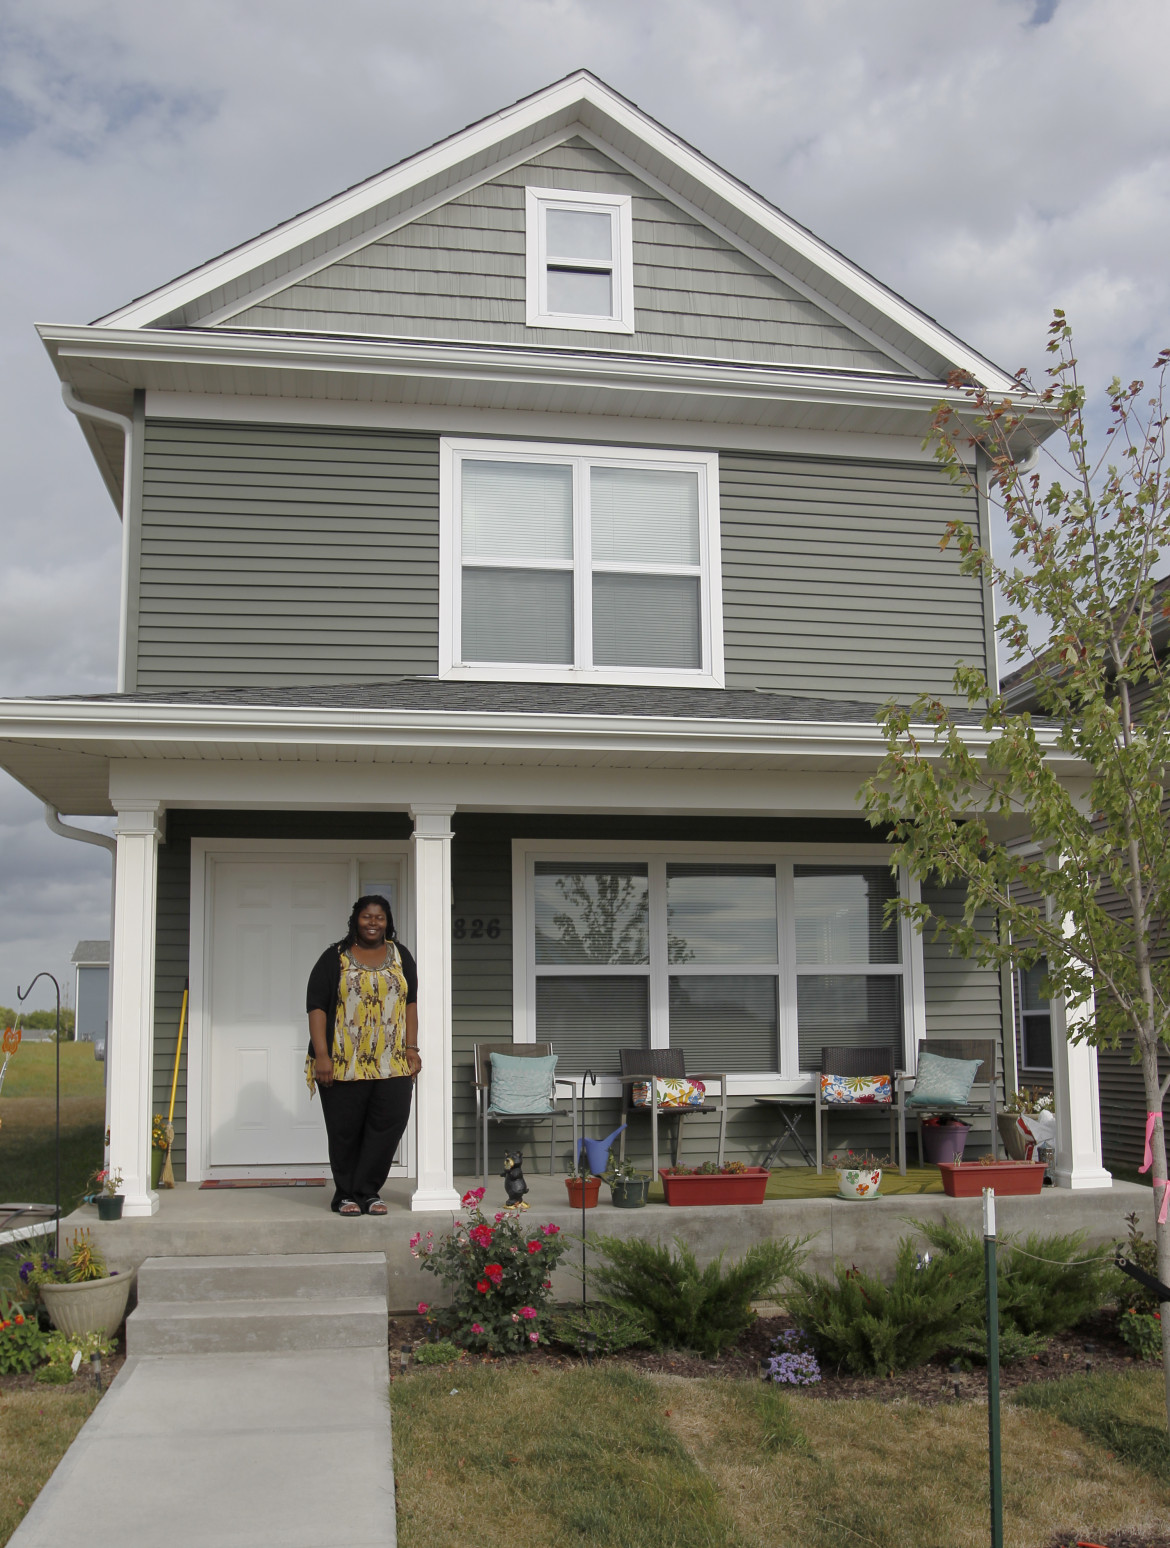 LaTasha Massey stands on the porch of her home on Wednesday, September, 11, 2013 in Iowa City, Iowa. Massey moved in to the house last December participating in a city-run, state-funded program providing down payment assistance to potential home buyers who meet income guidelines.